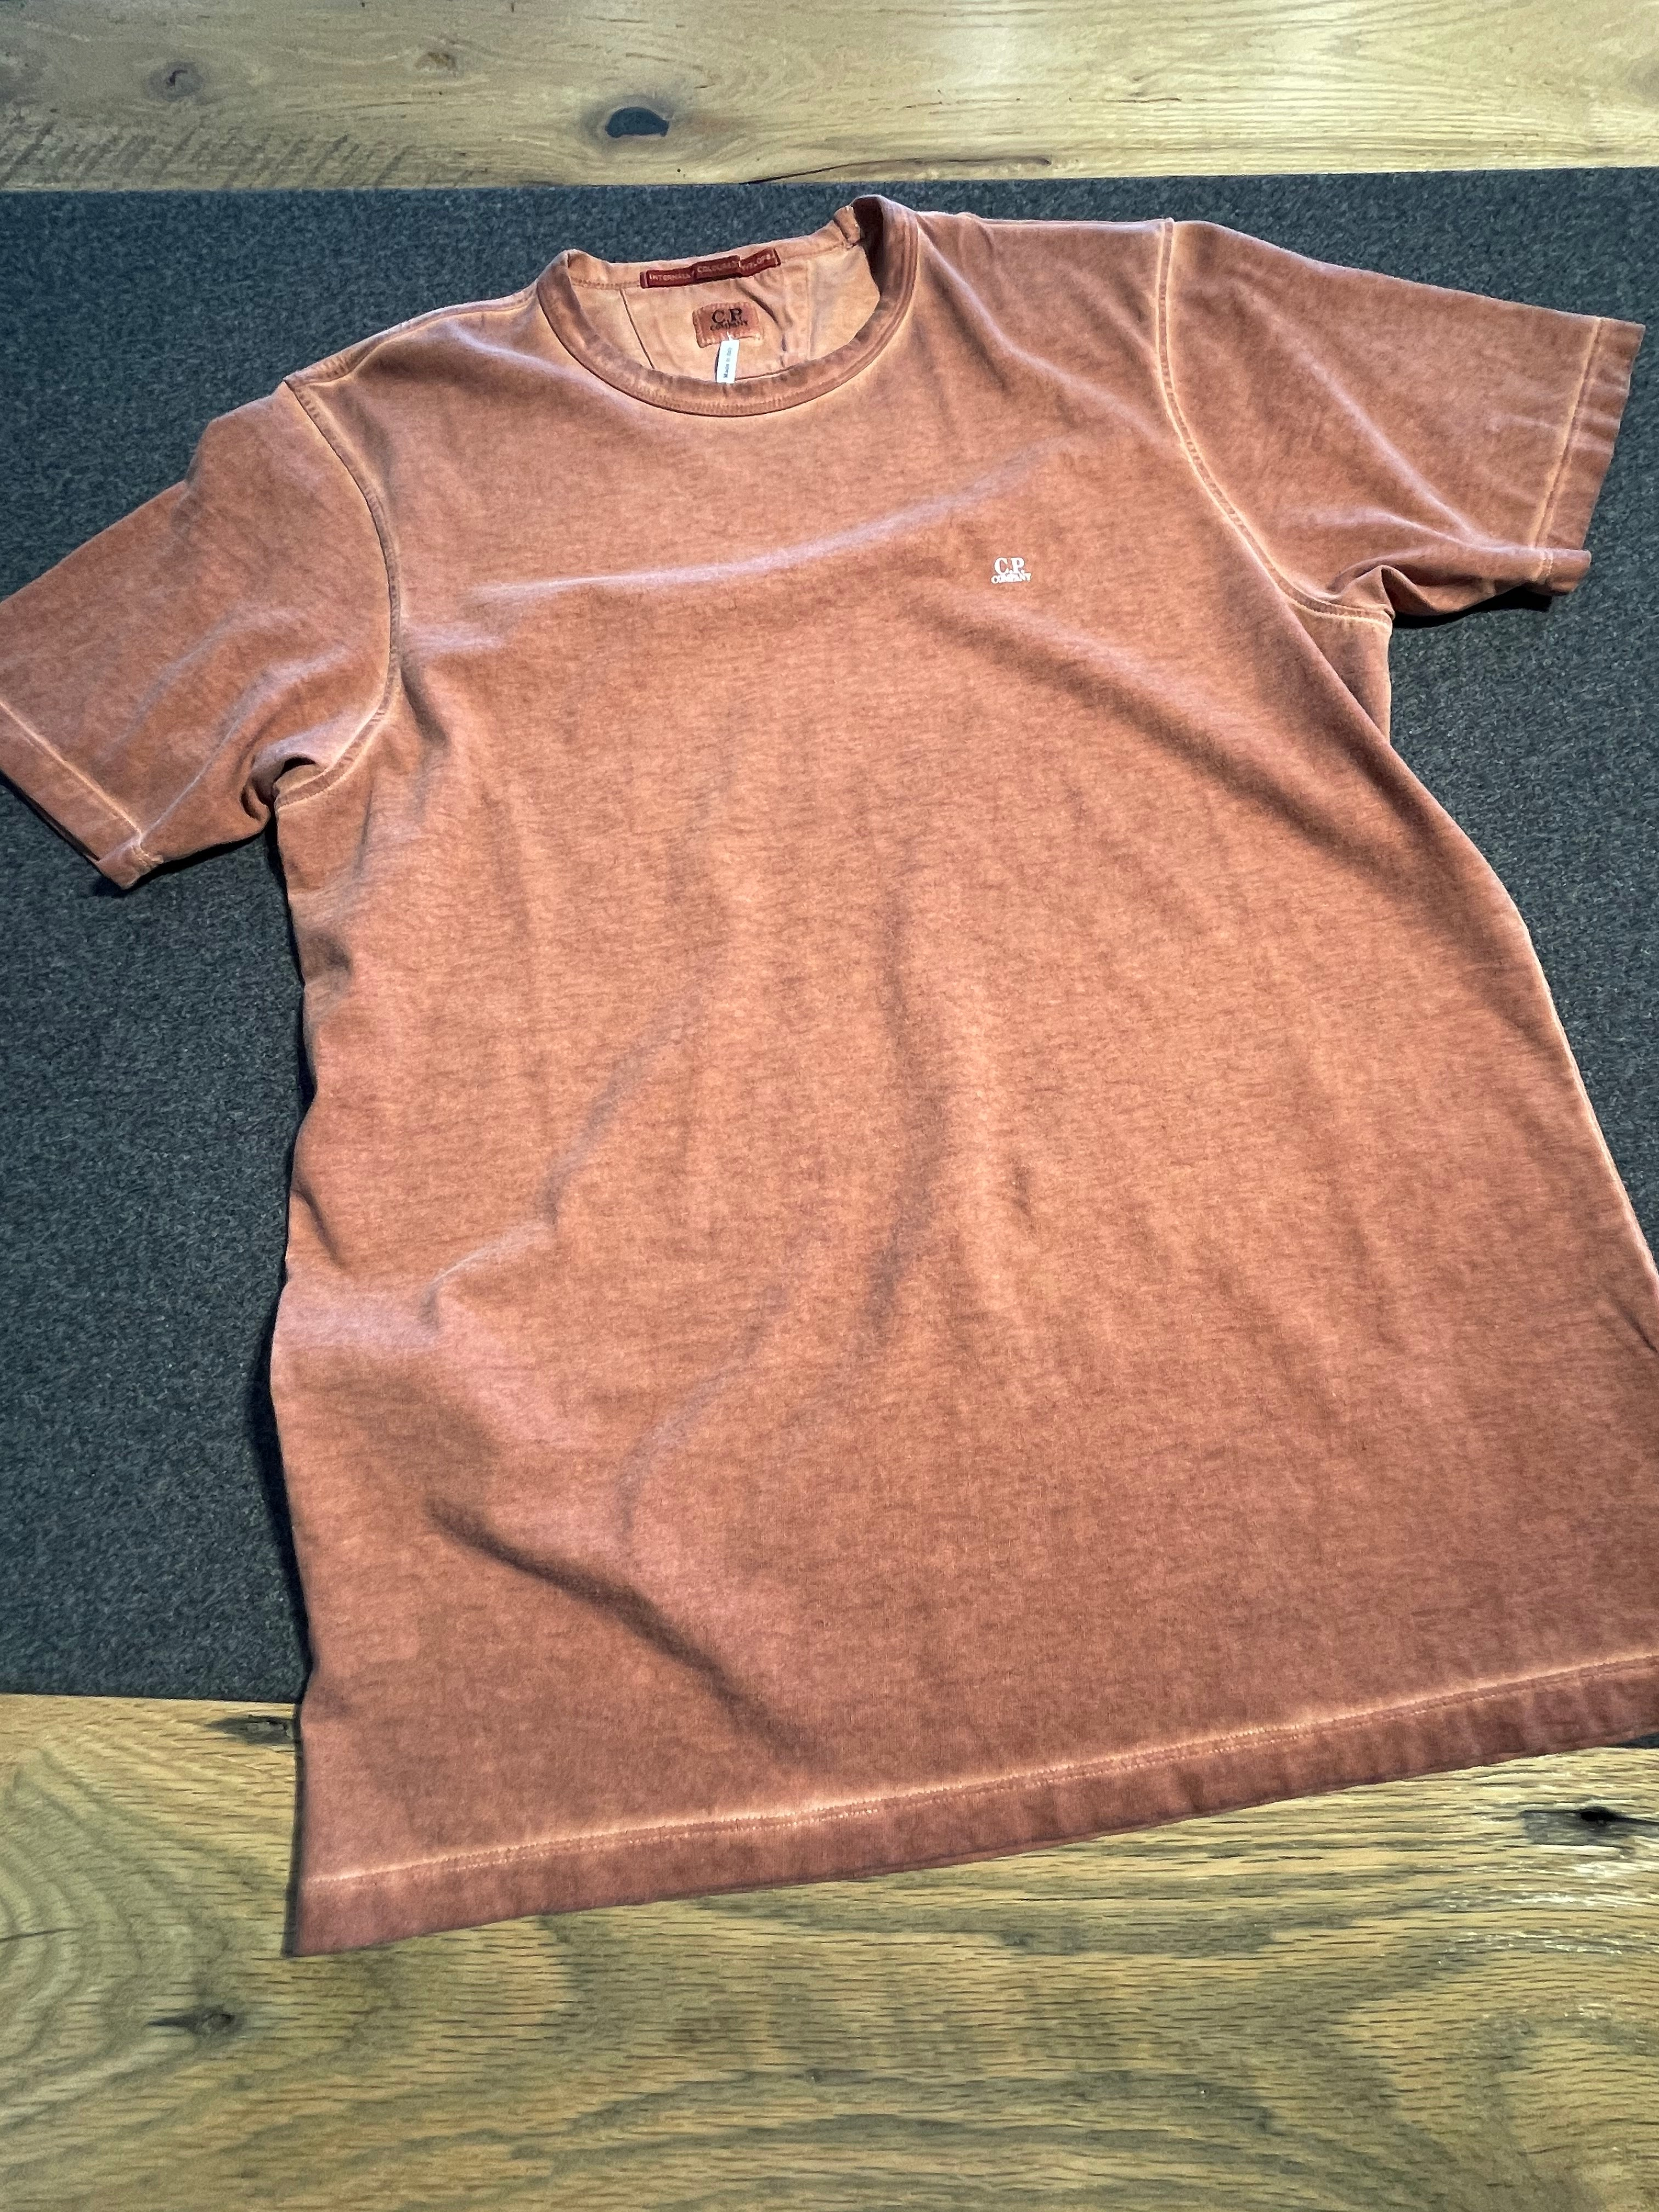 30/1 Jersey Chest Logo T-Shirt in Faded Orange